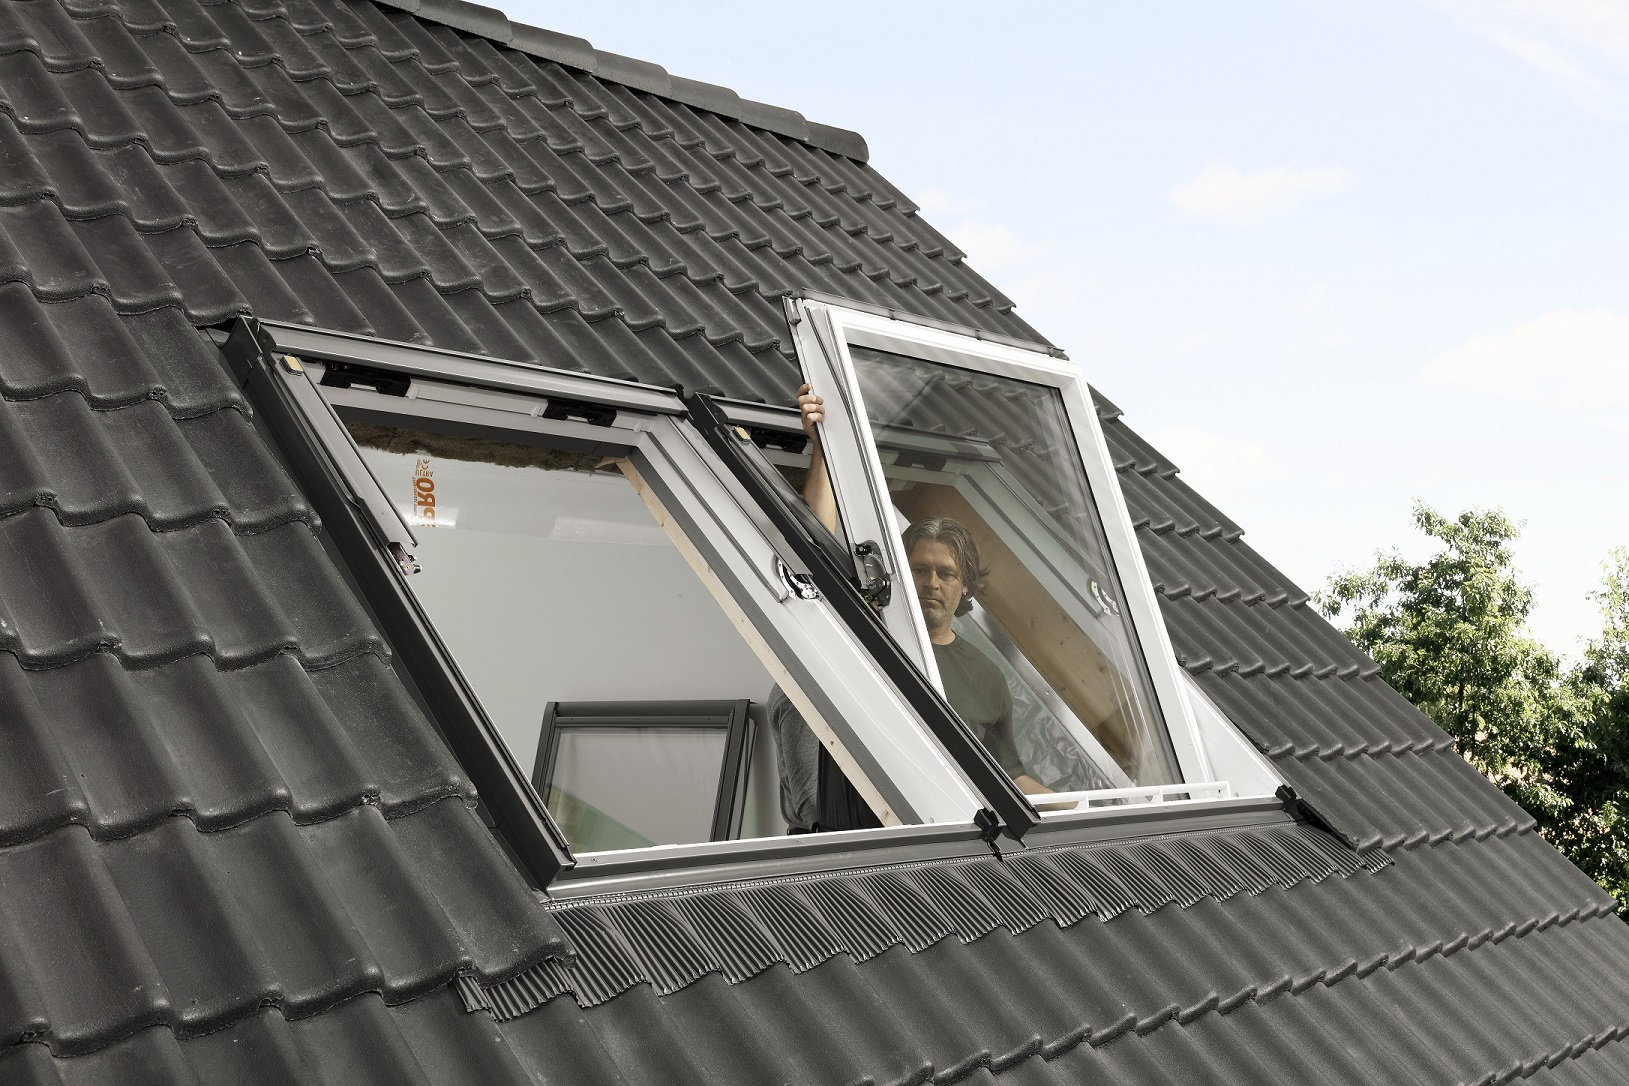 How to Locate a VELUX Roof Window Type & Size